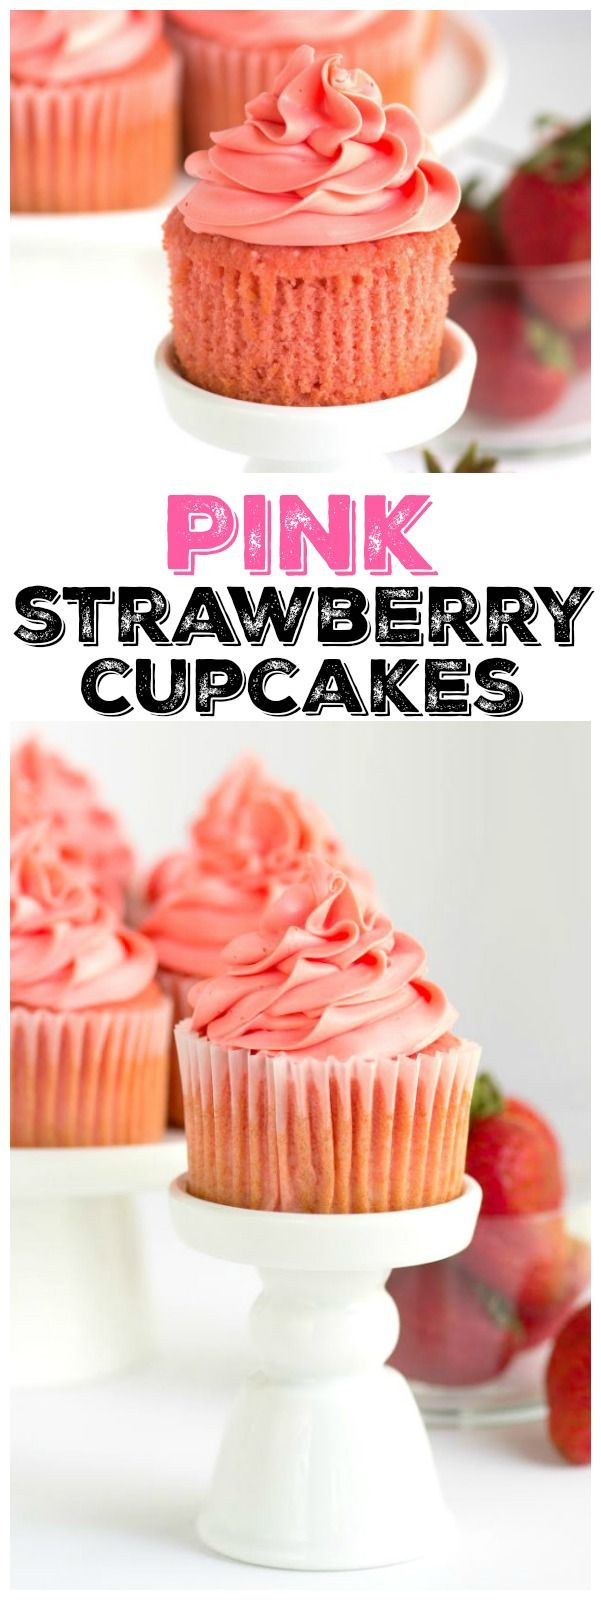 Pink Strawberry Cupcakes recipe topped with the best buttercream EVER.  Be careful:  the cupcake batter tastes like strawberry ice cream!!